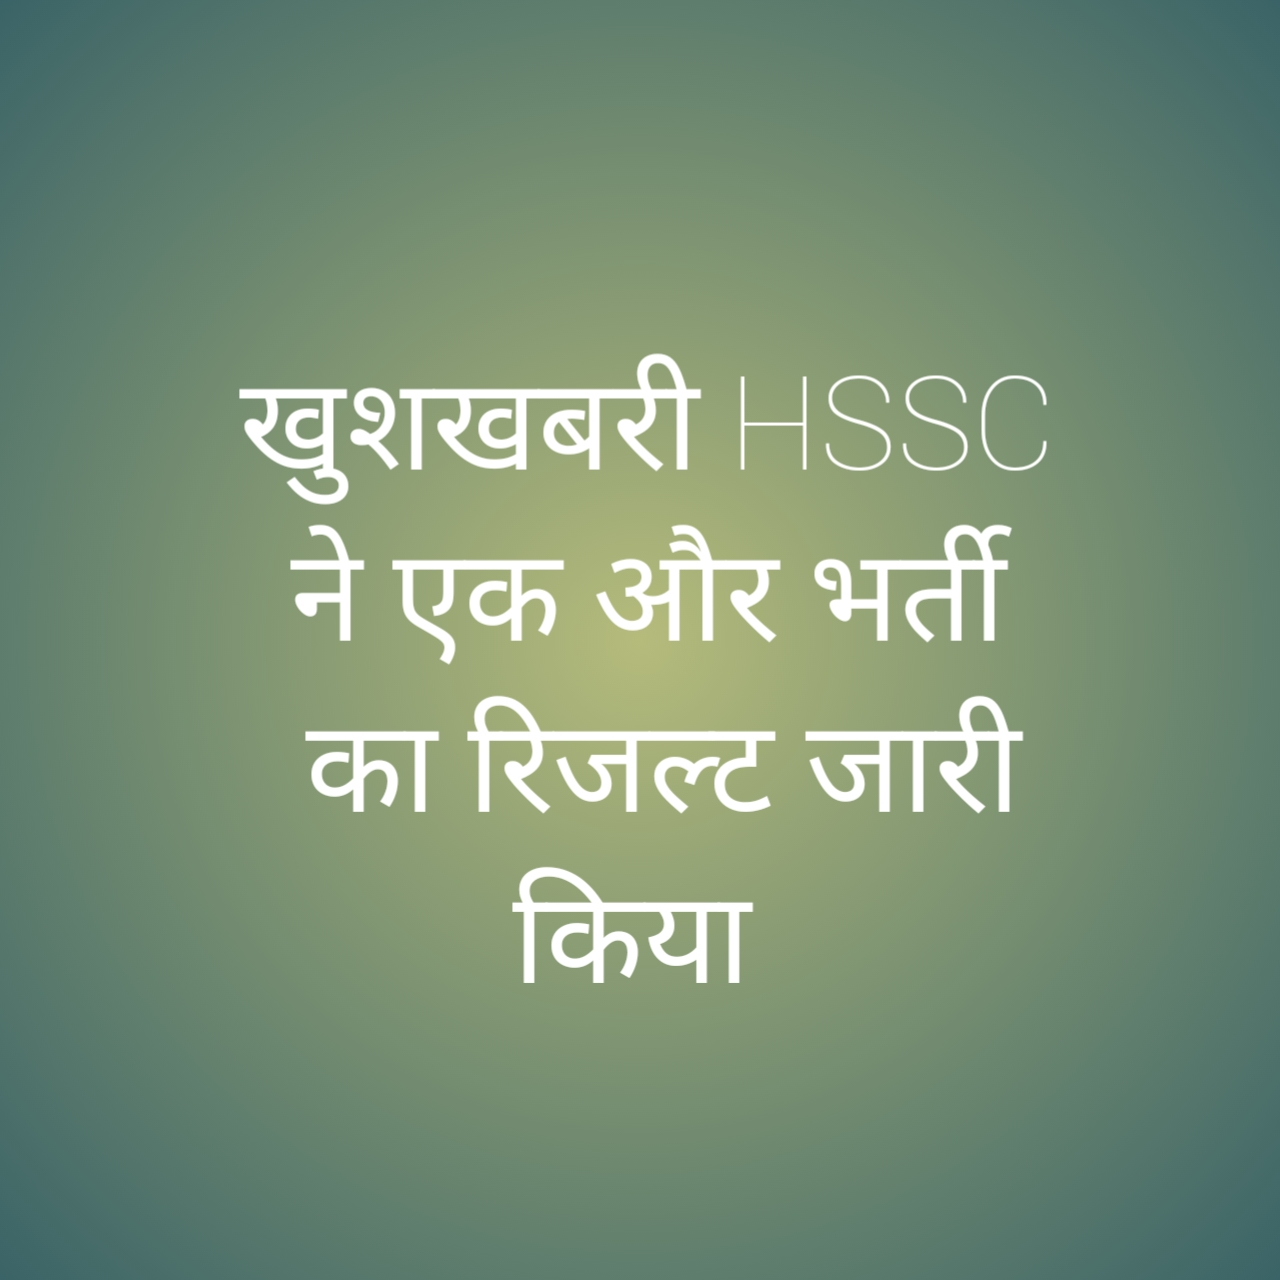 Hssc declare result of male constable commando wing 2021